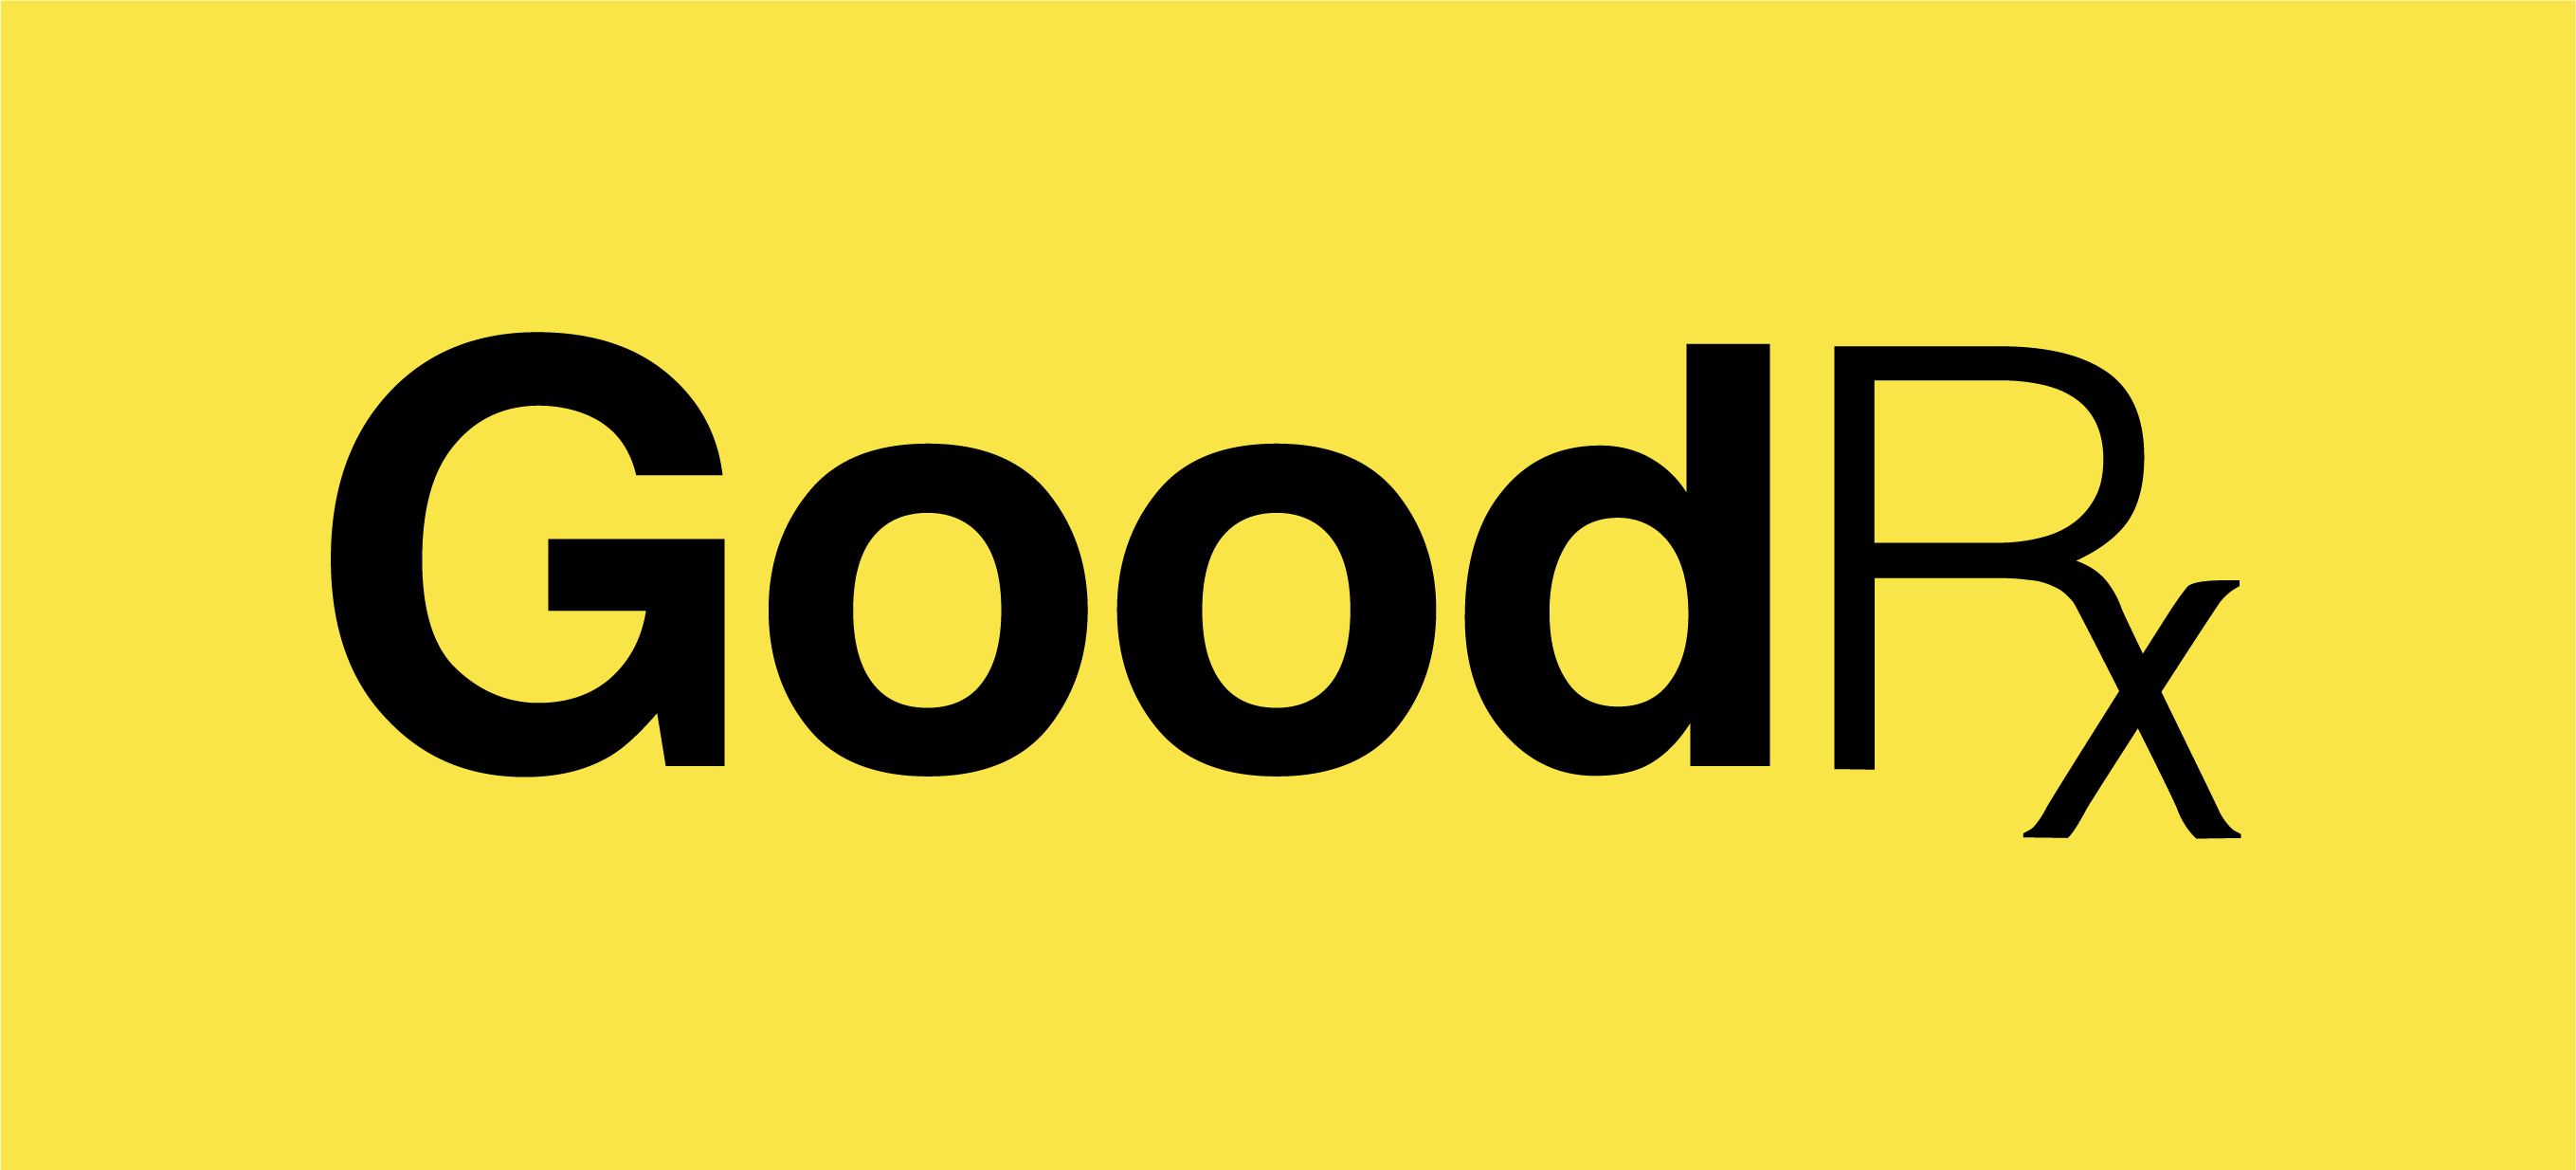 How To Save On Medications With The Goodrx Gold Drug Savings Program Goodrx